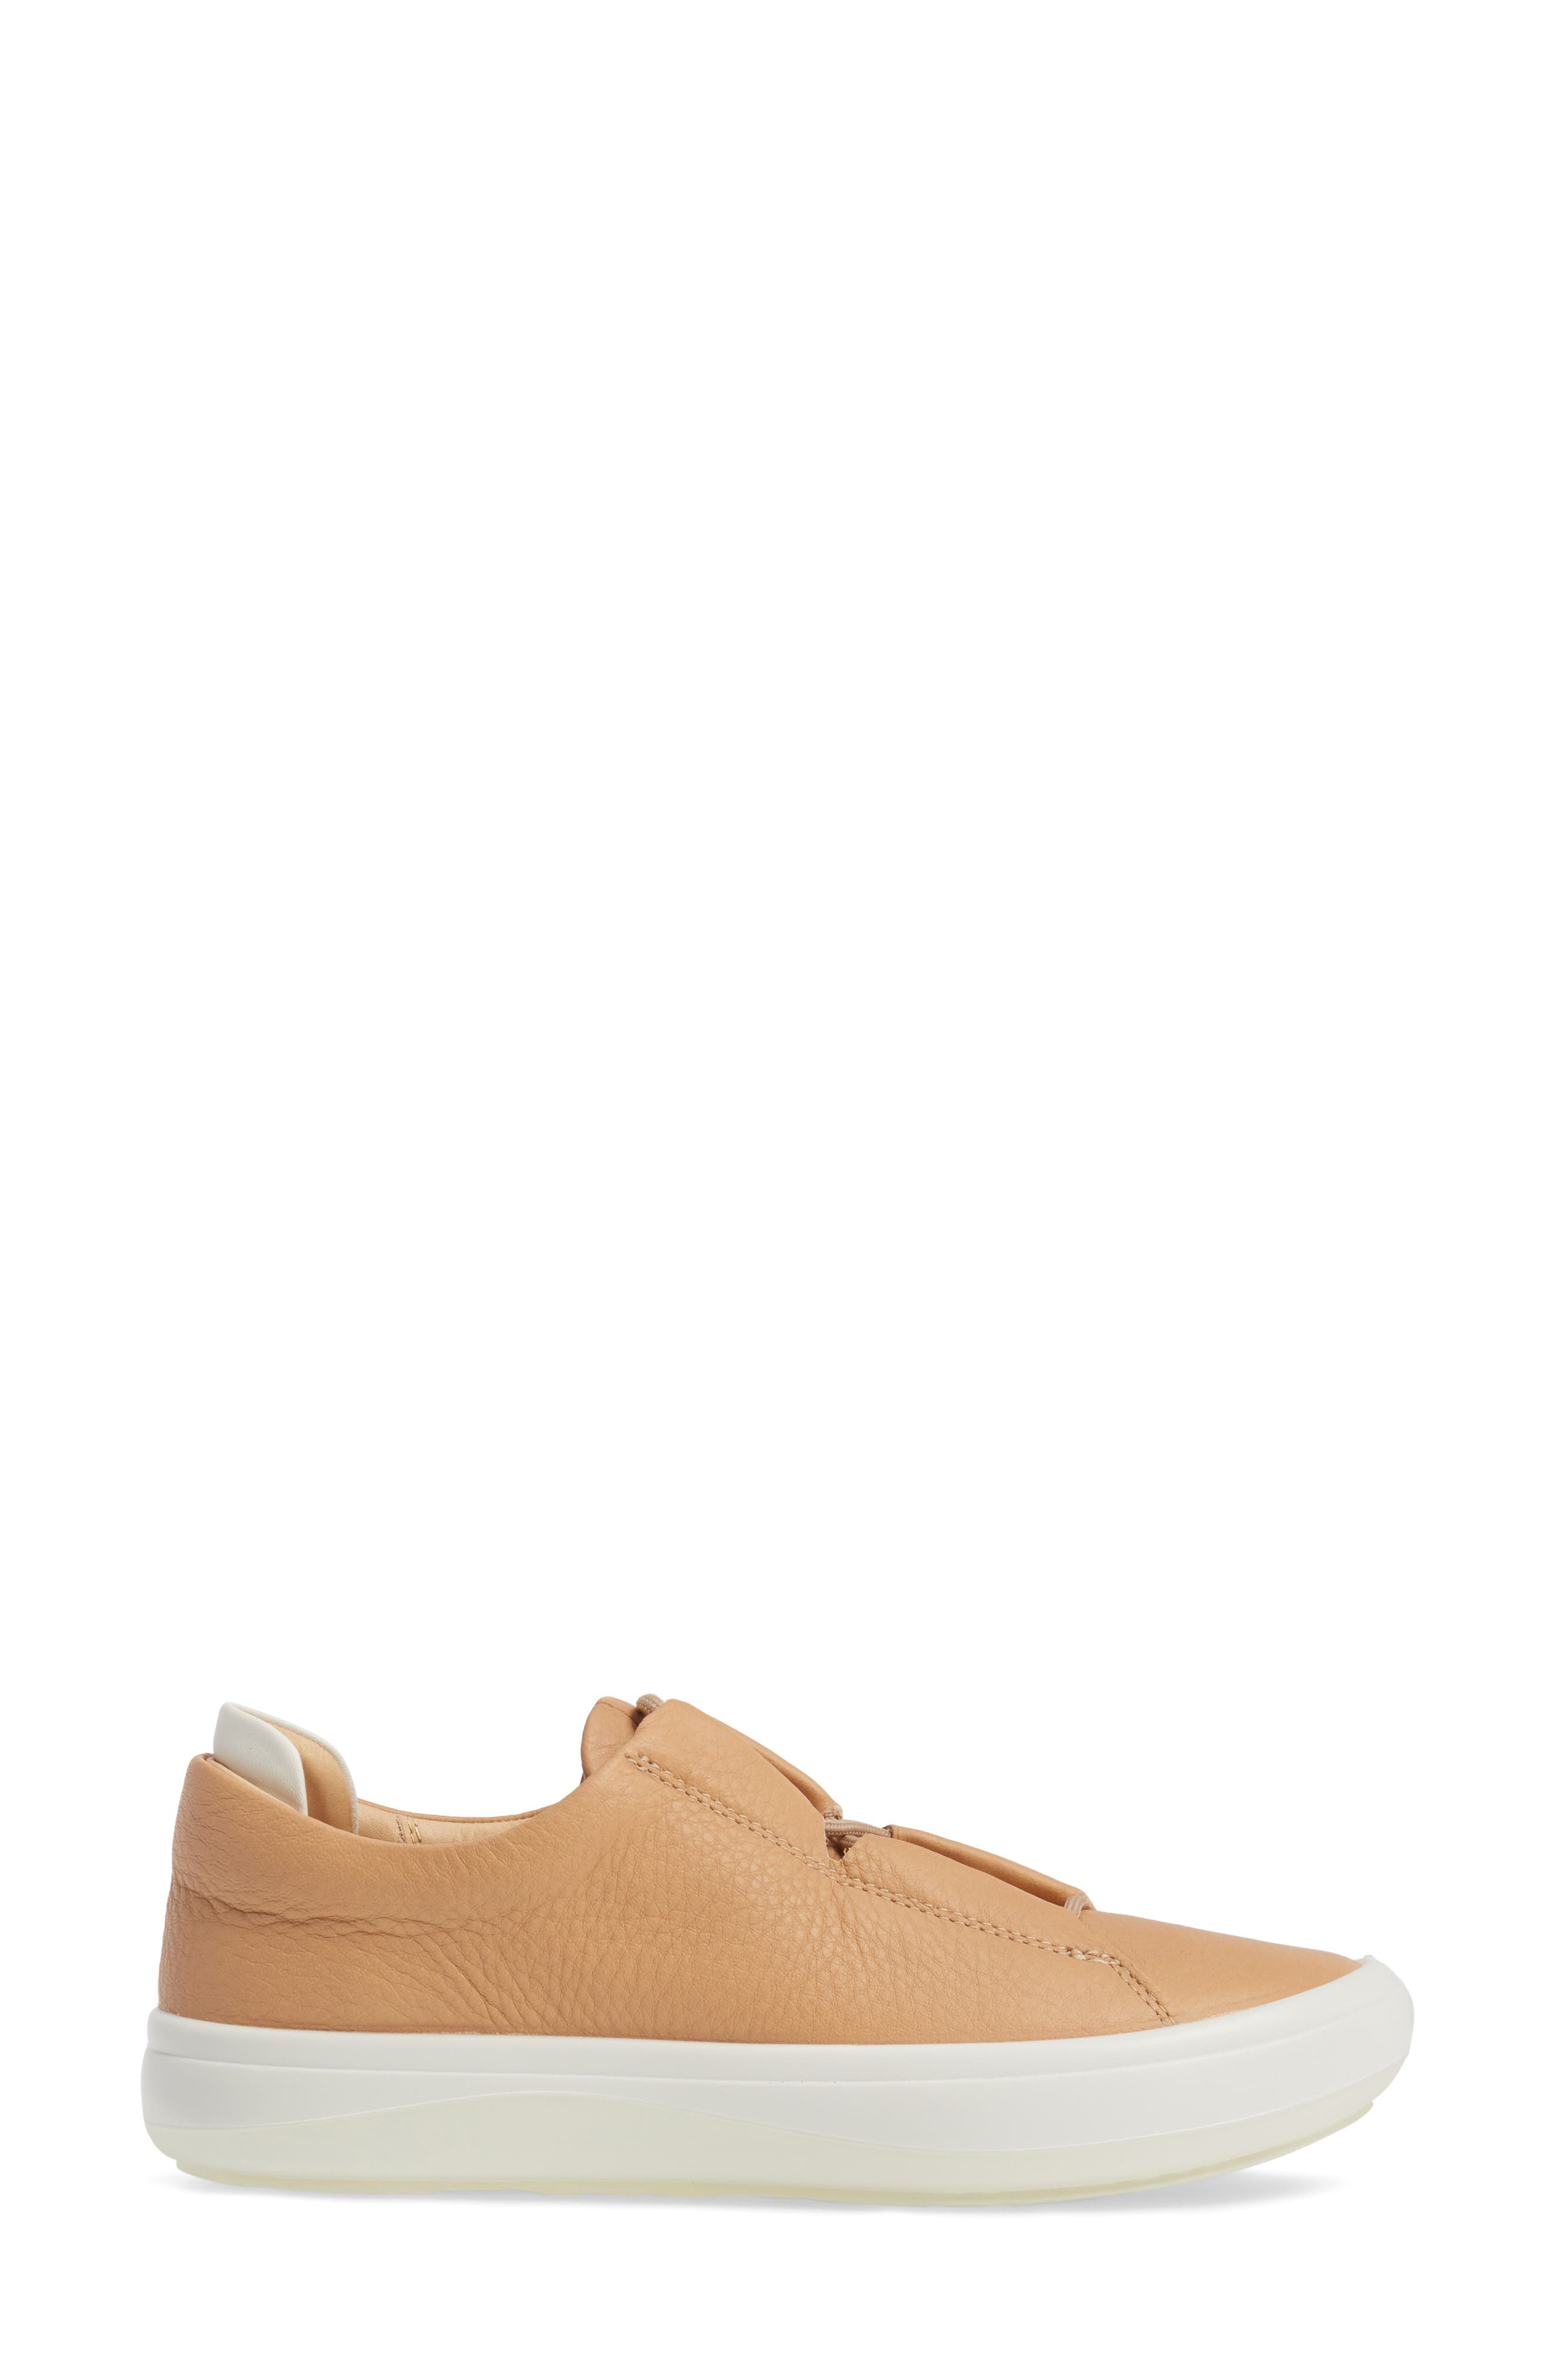 Kinhin Low Top Sneaker,                             Alternate thumbnail 3, color,                             Volluto Leather